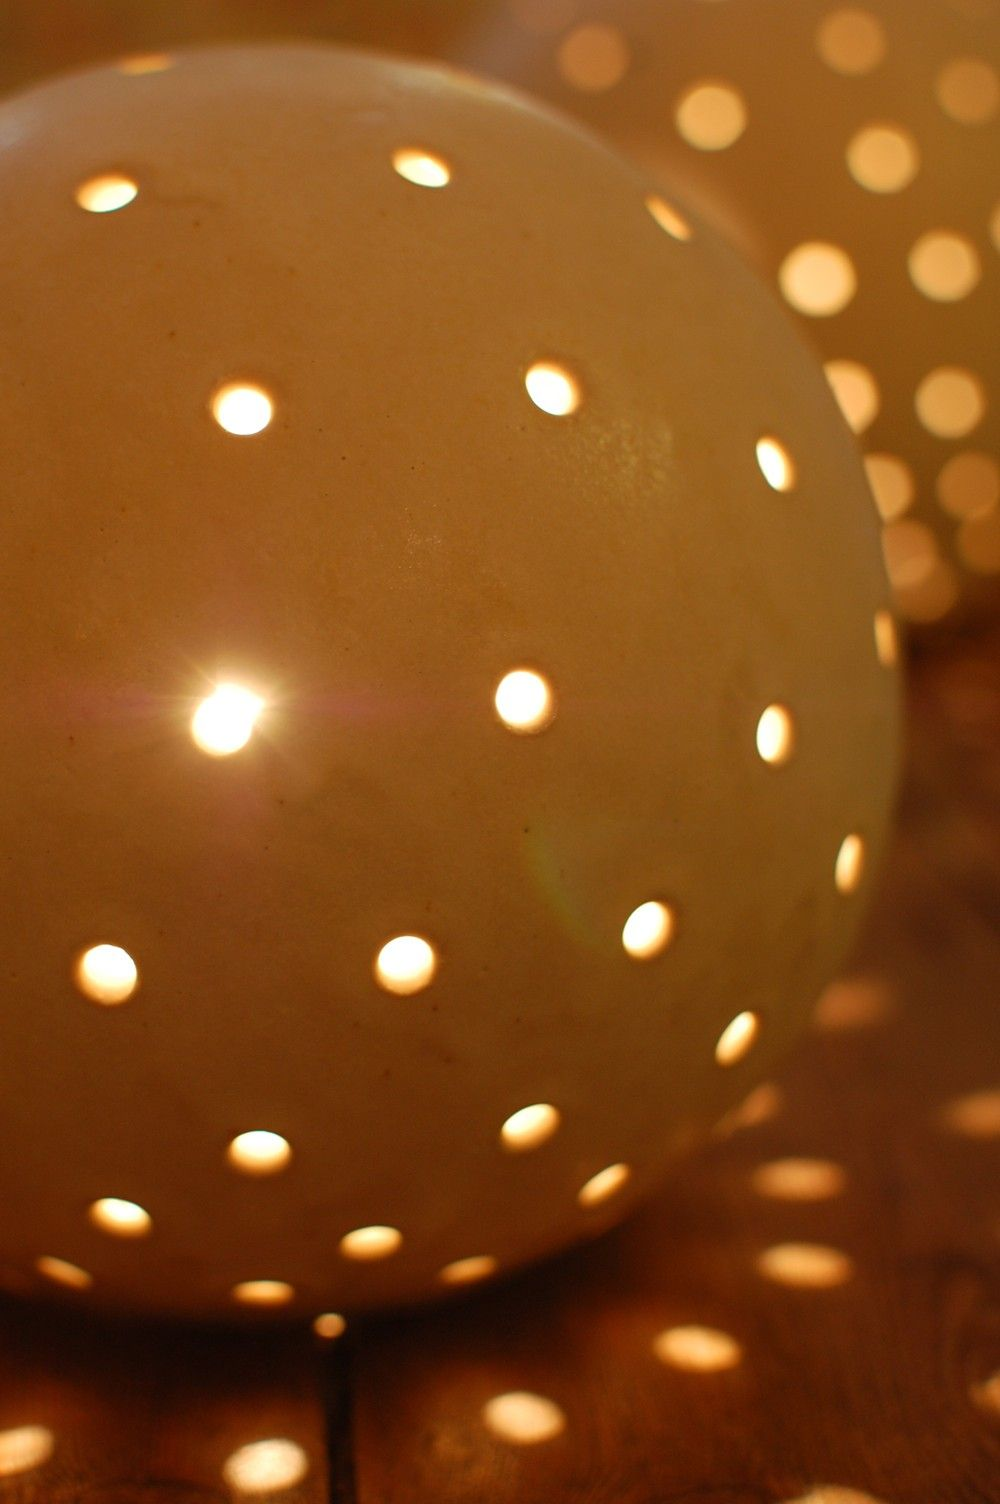 Ceramic Globe Lamp With Holes That Let